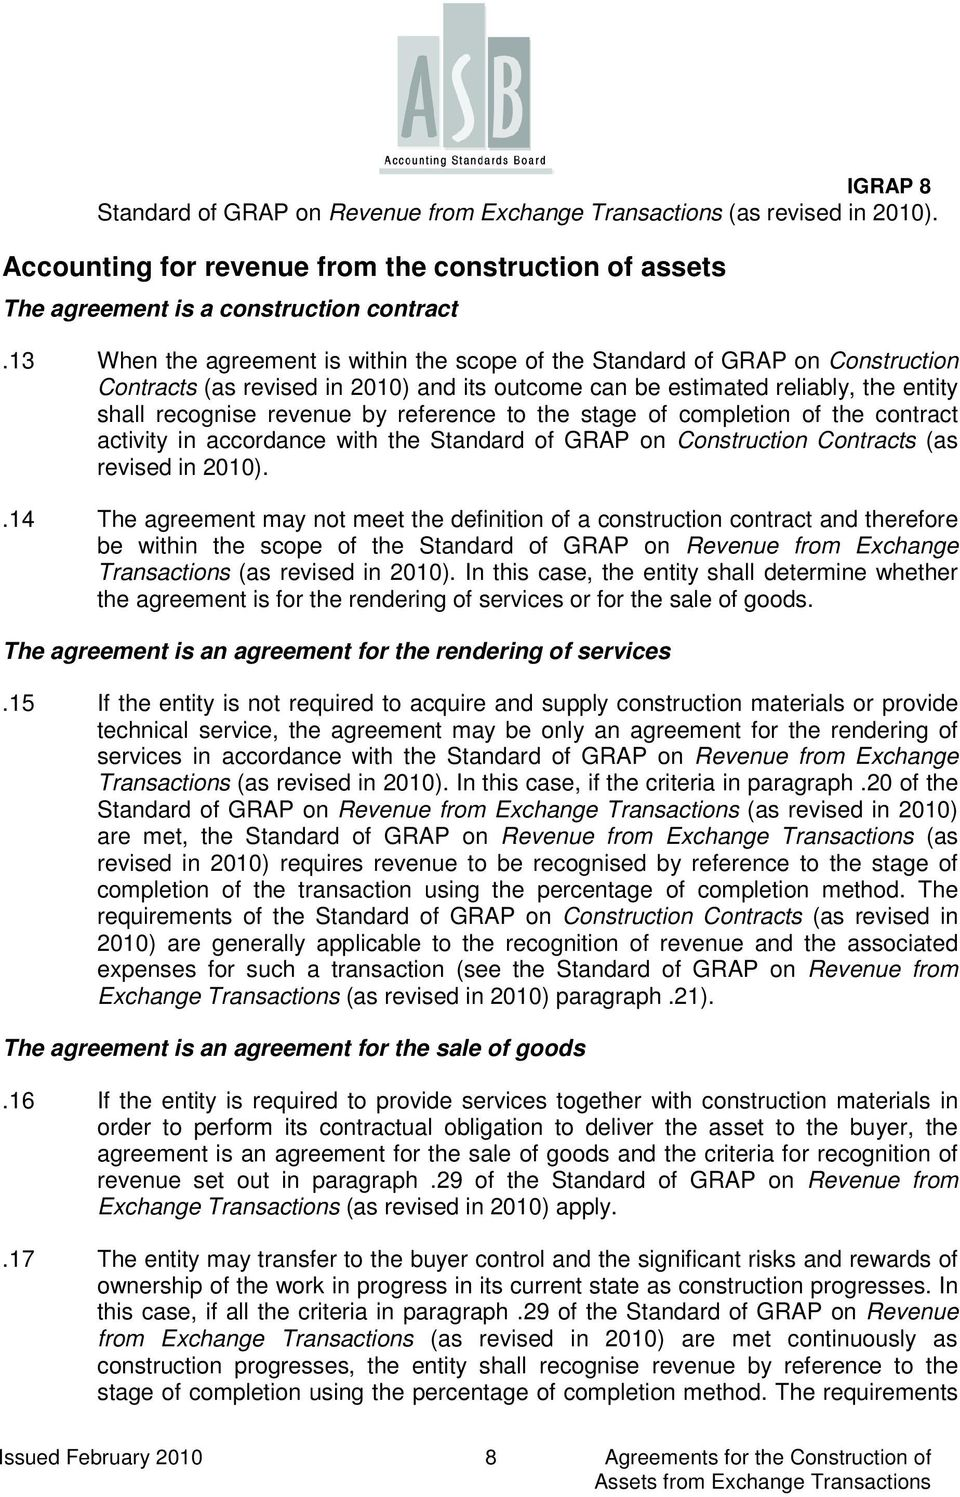 reference to the stage of completion of the contract activity in accordance with the Standard of GRAP on Construction Contracts (as revised in 2010).